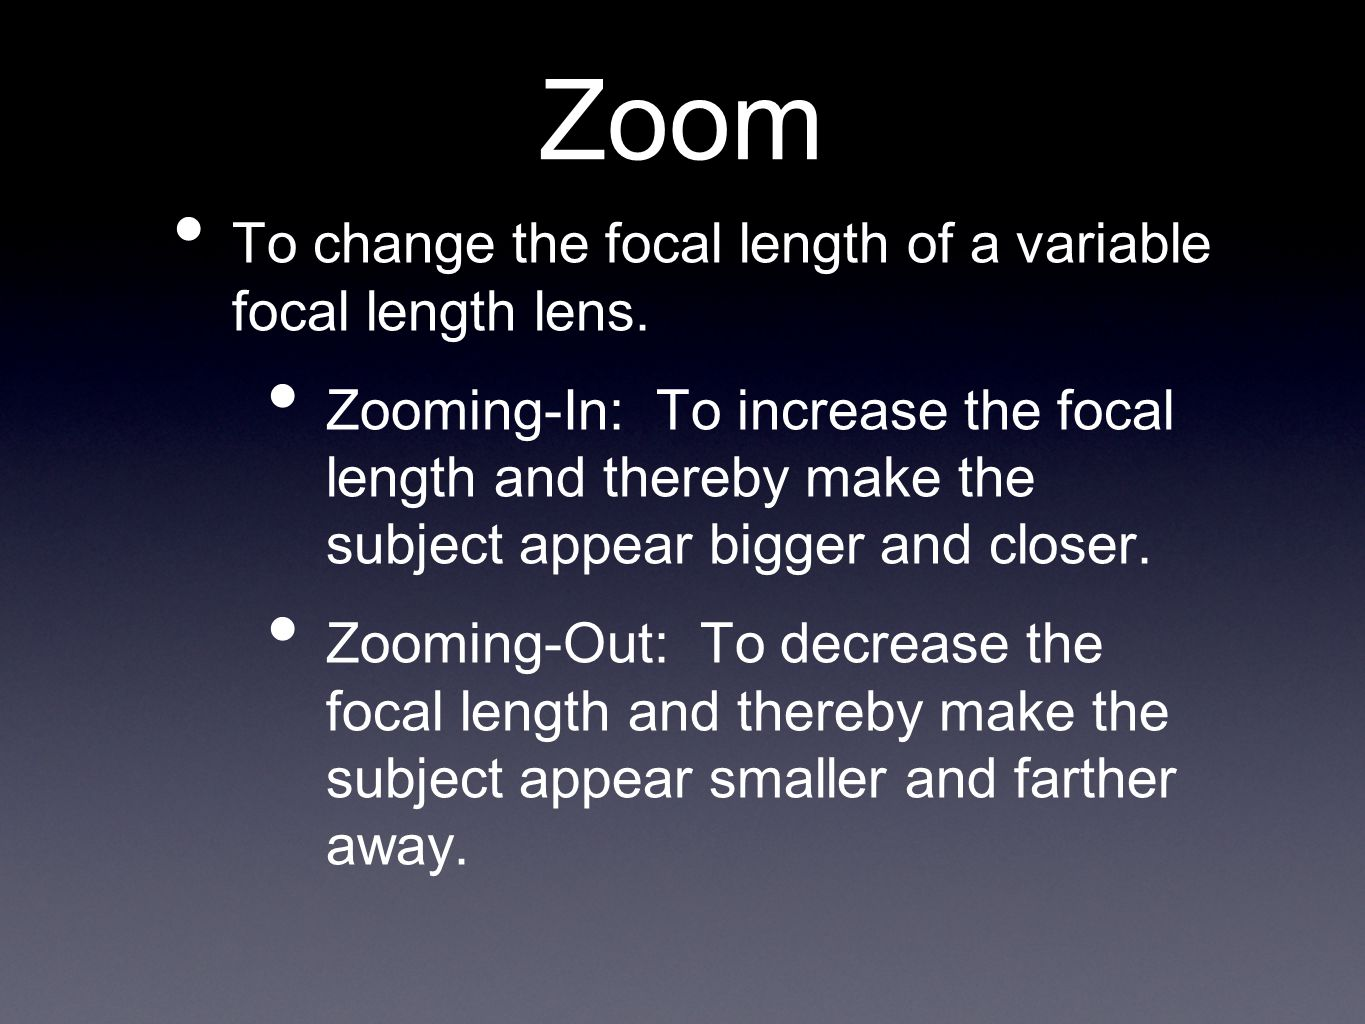 Zoom To change the focal length of a variable focal length lens.